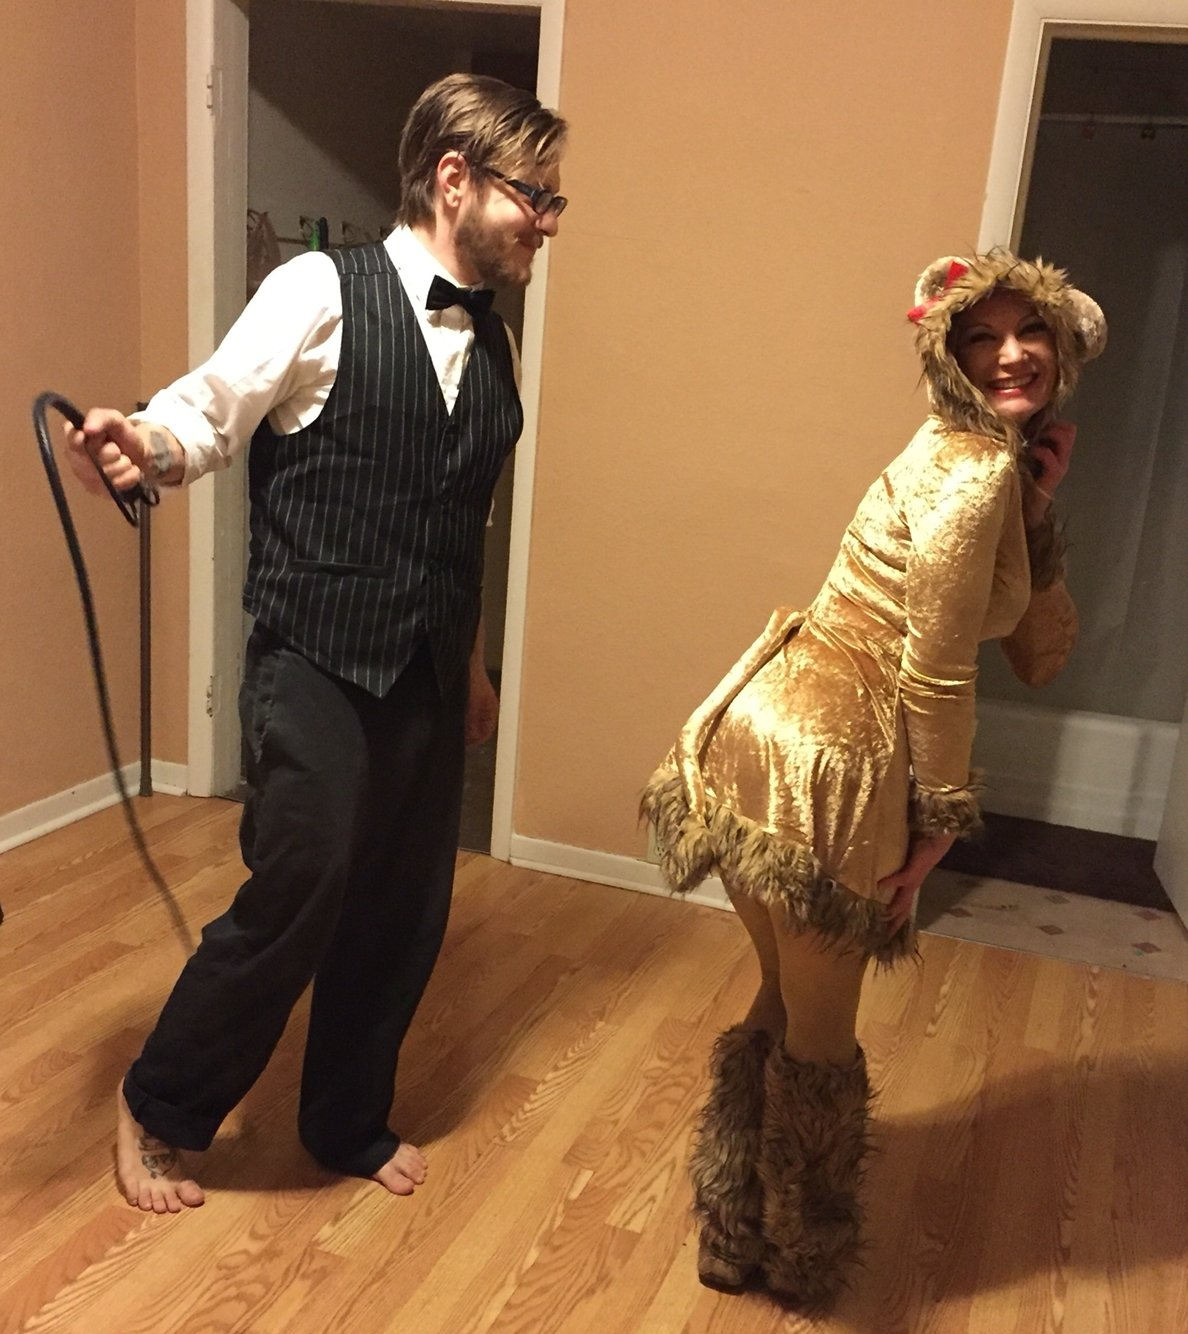 10 Nice Cute Couple Ideas For Halloween lioness and lion tamer couples halloween costume so cute and easy